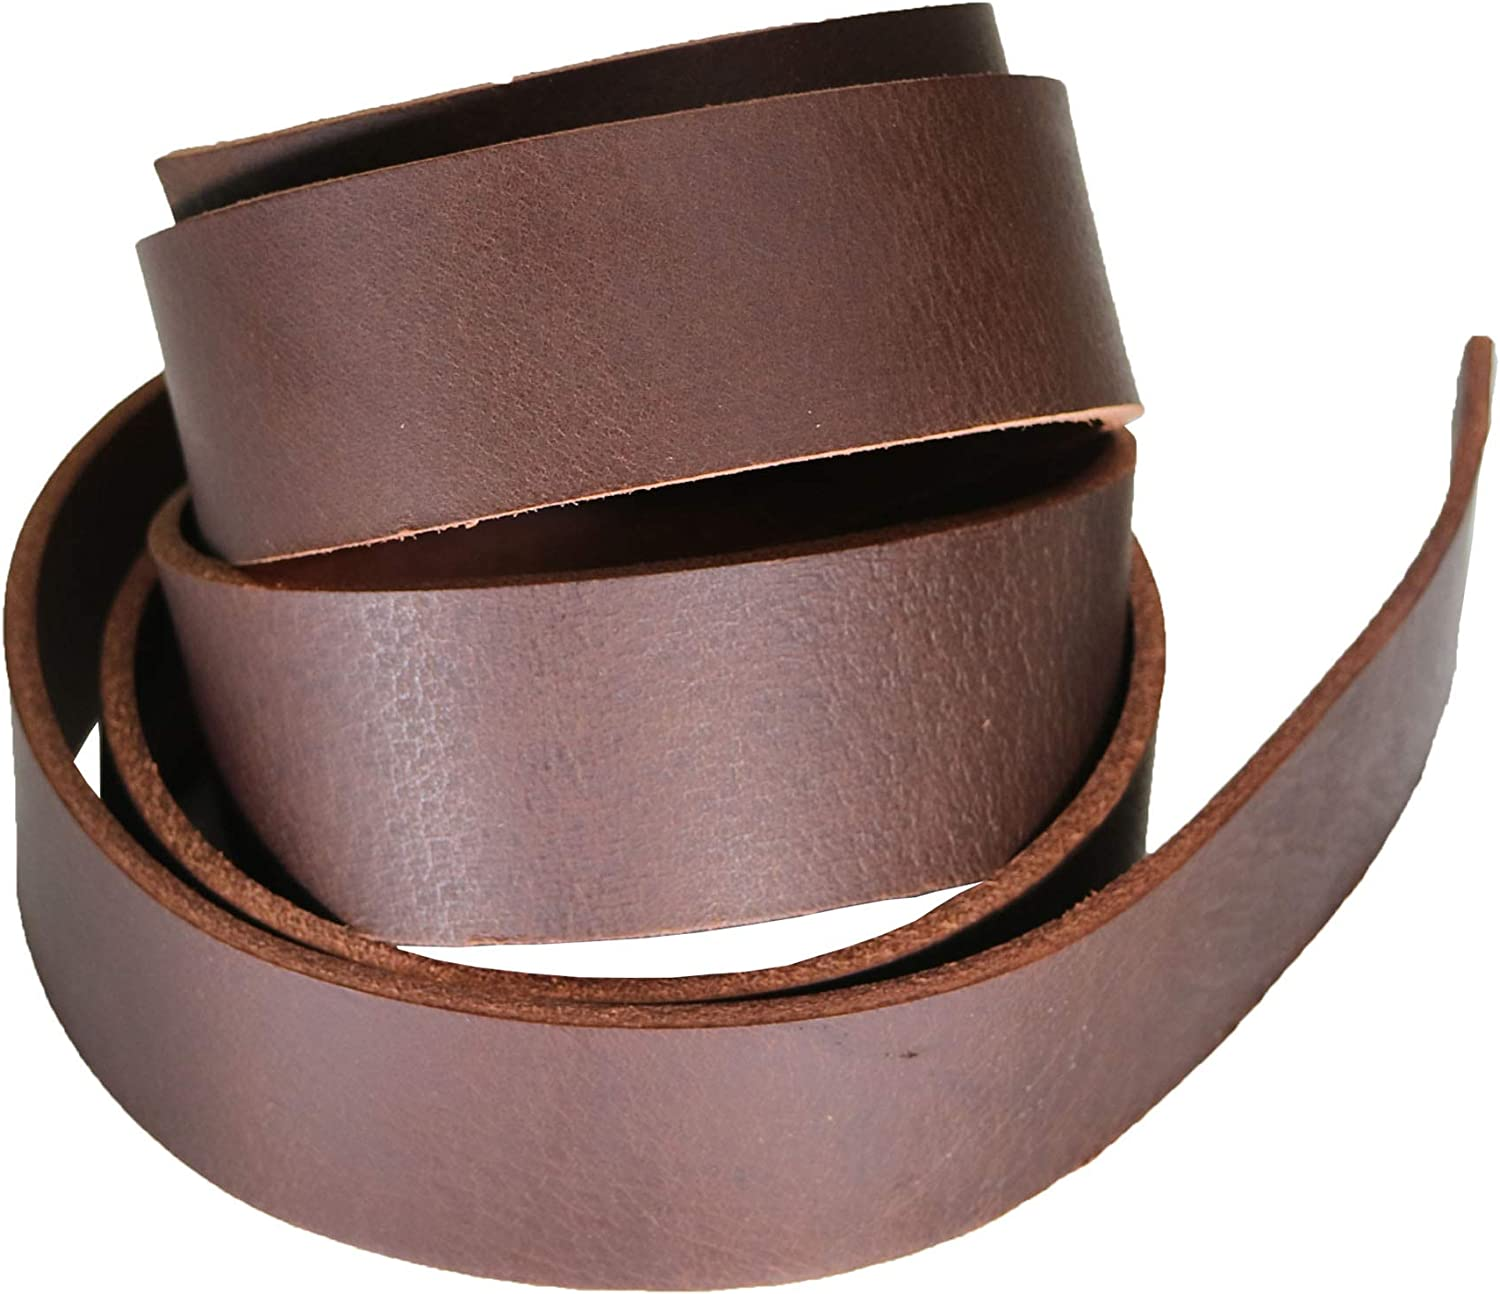 "Leather Belt Blank Strip Brown West Tan Leather Strip for Belts Buffalo Leather Strap 55/"" to 60/"" in Length 2/"" Wide Heavy Weight Thick 8oz 10oz"